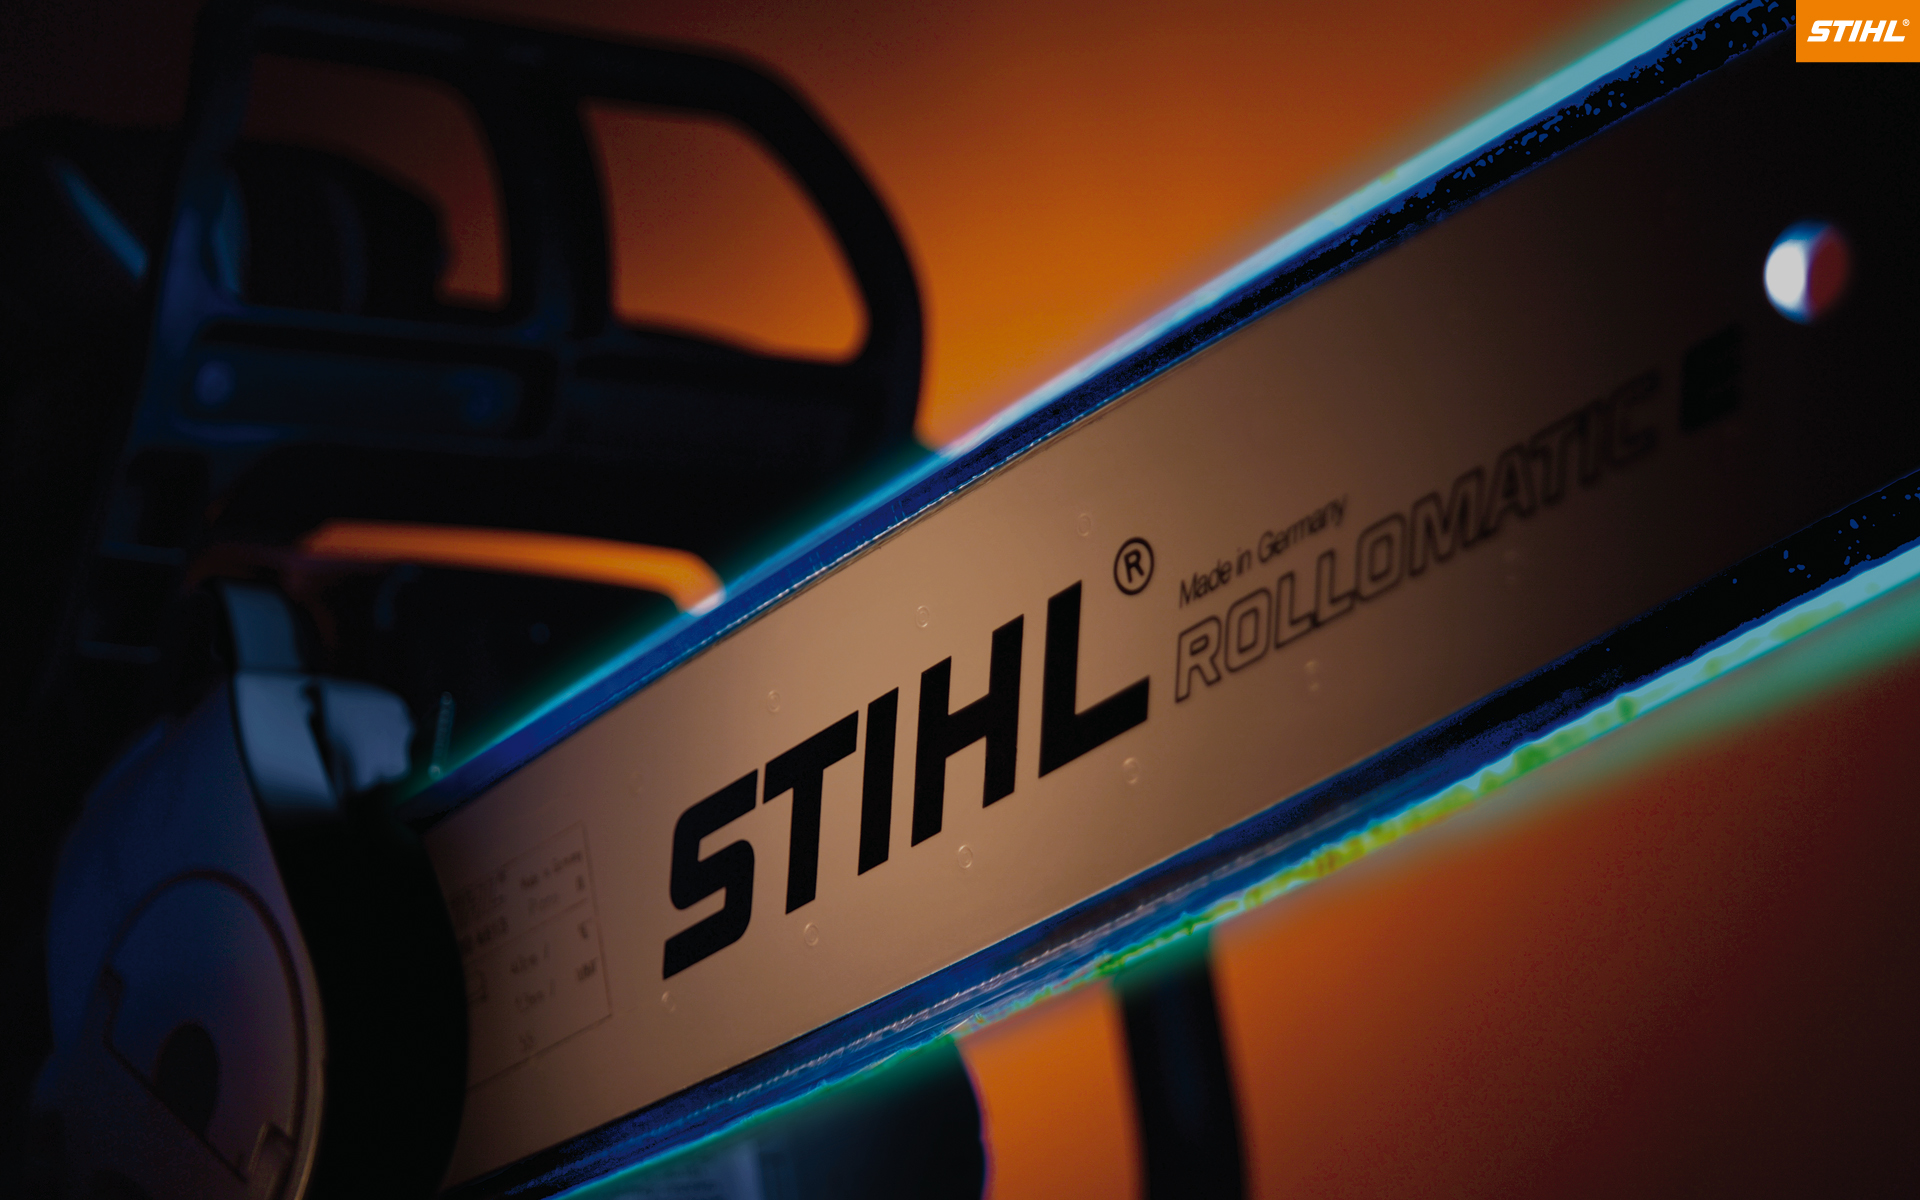 Our Wallpaper for more STIHL on your screen | STIHL